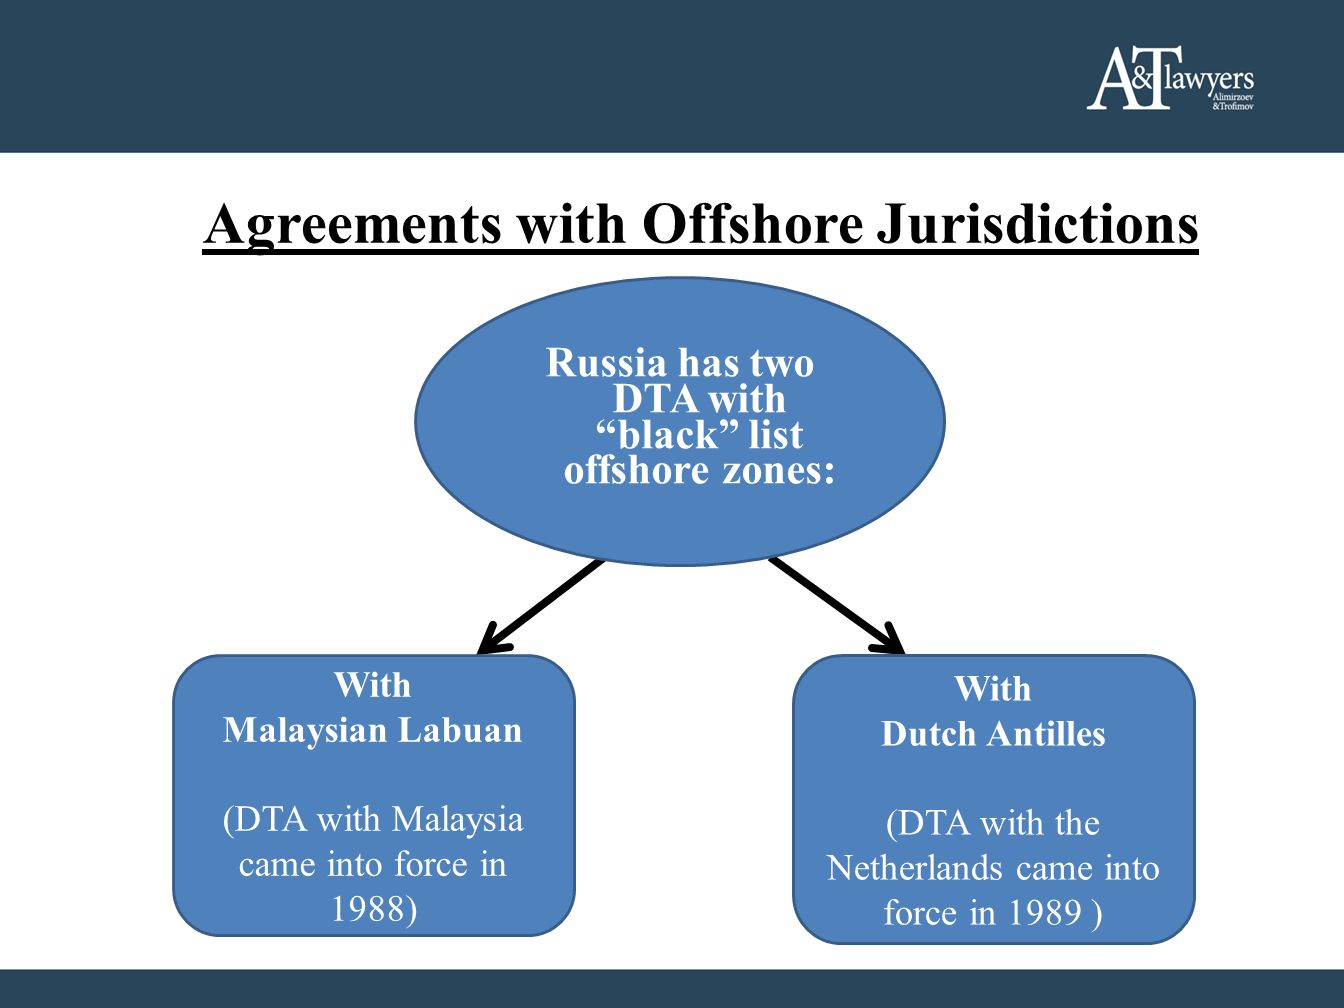 Agreements with Offshore Jurisdictions With Dutch Antilles (DTA with the Netherlands came into force in 1989 ) With Malaysian Labuan (DTA with Malaysia came into force in 1988) Russia has two DTA with black list offshore zones: